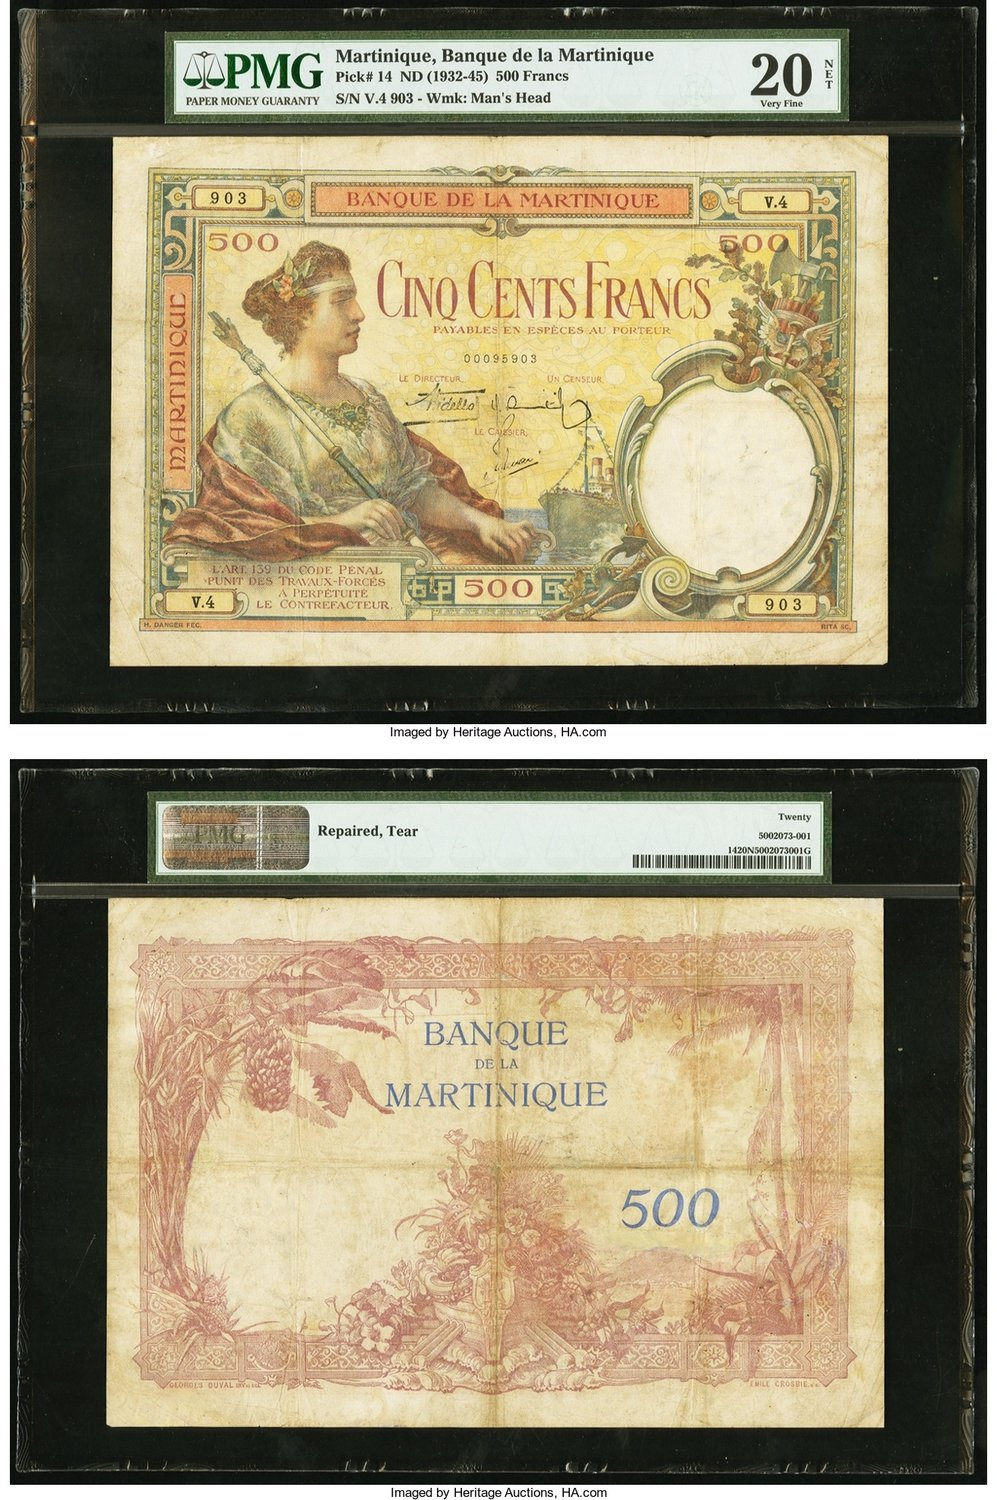 Numisbids Heritage World Coin Auctions Csns Signature Currency 3554 Lot 28413 Martinique Banque De La 500 Francs Nd